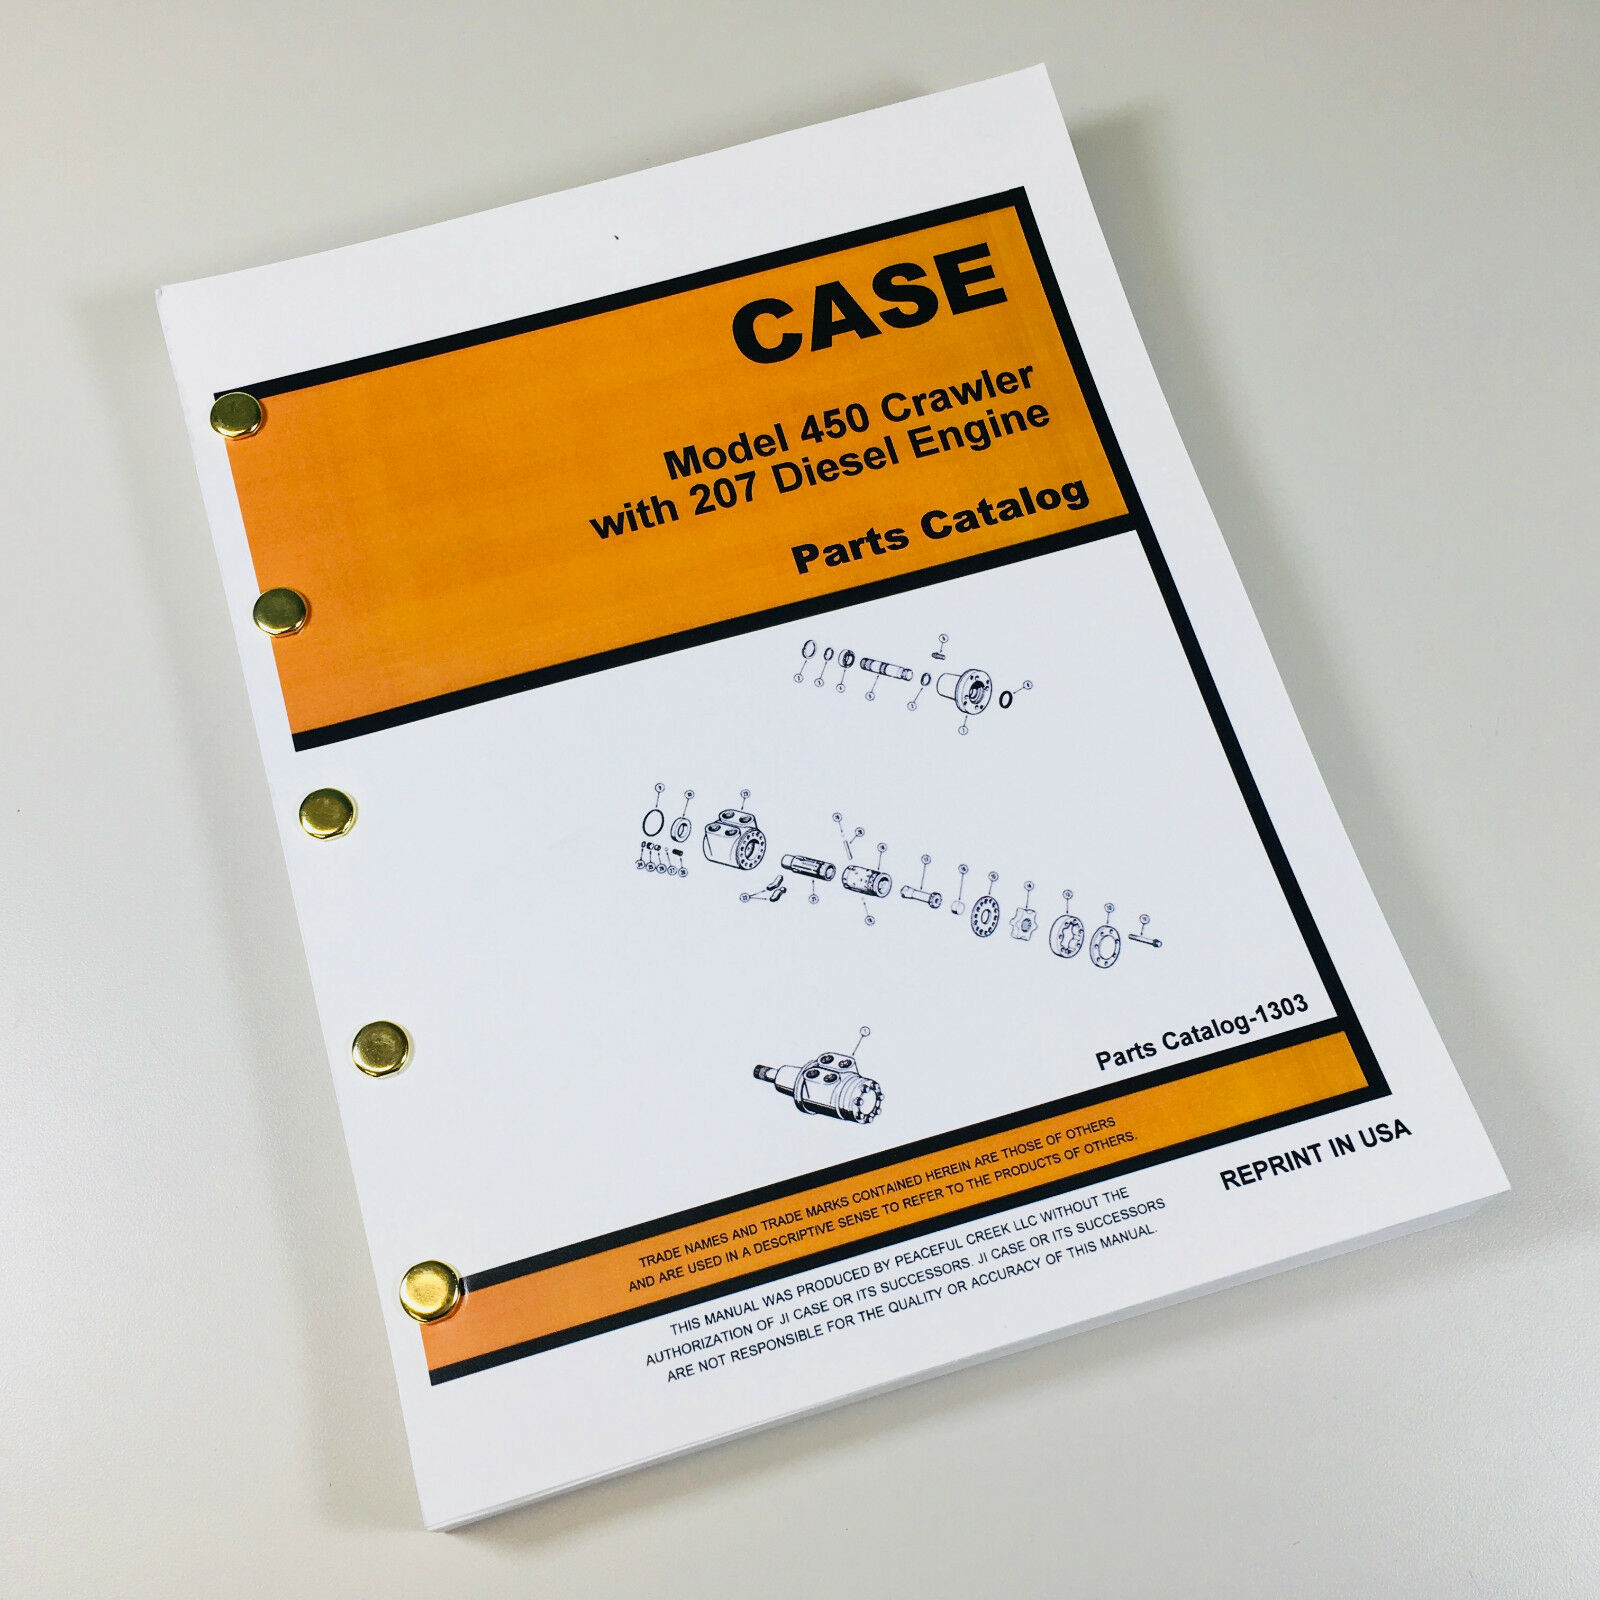 Case 450 Crawler Dozer Parts Manual. Covers all models with 207 Diesel  Engine Entire Chassis and engine, All Components